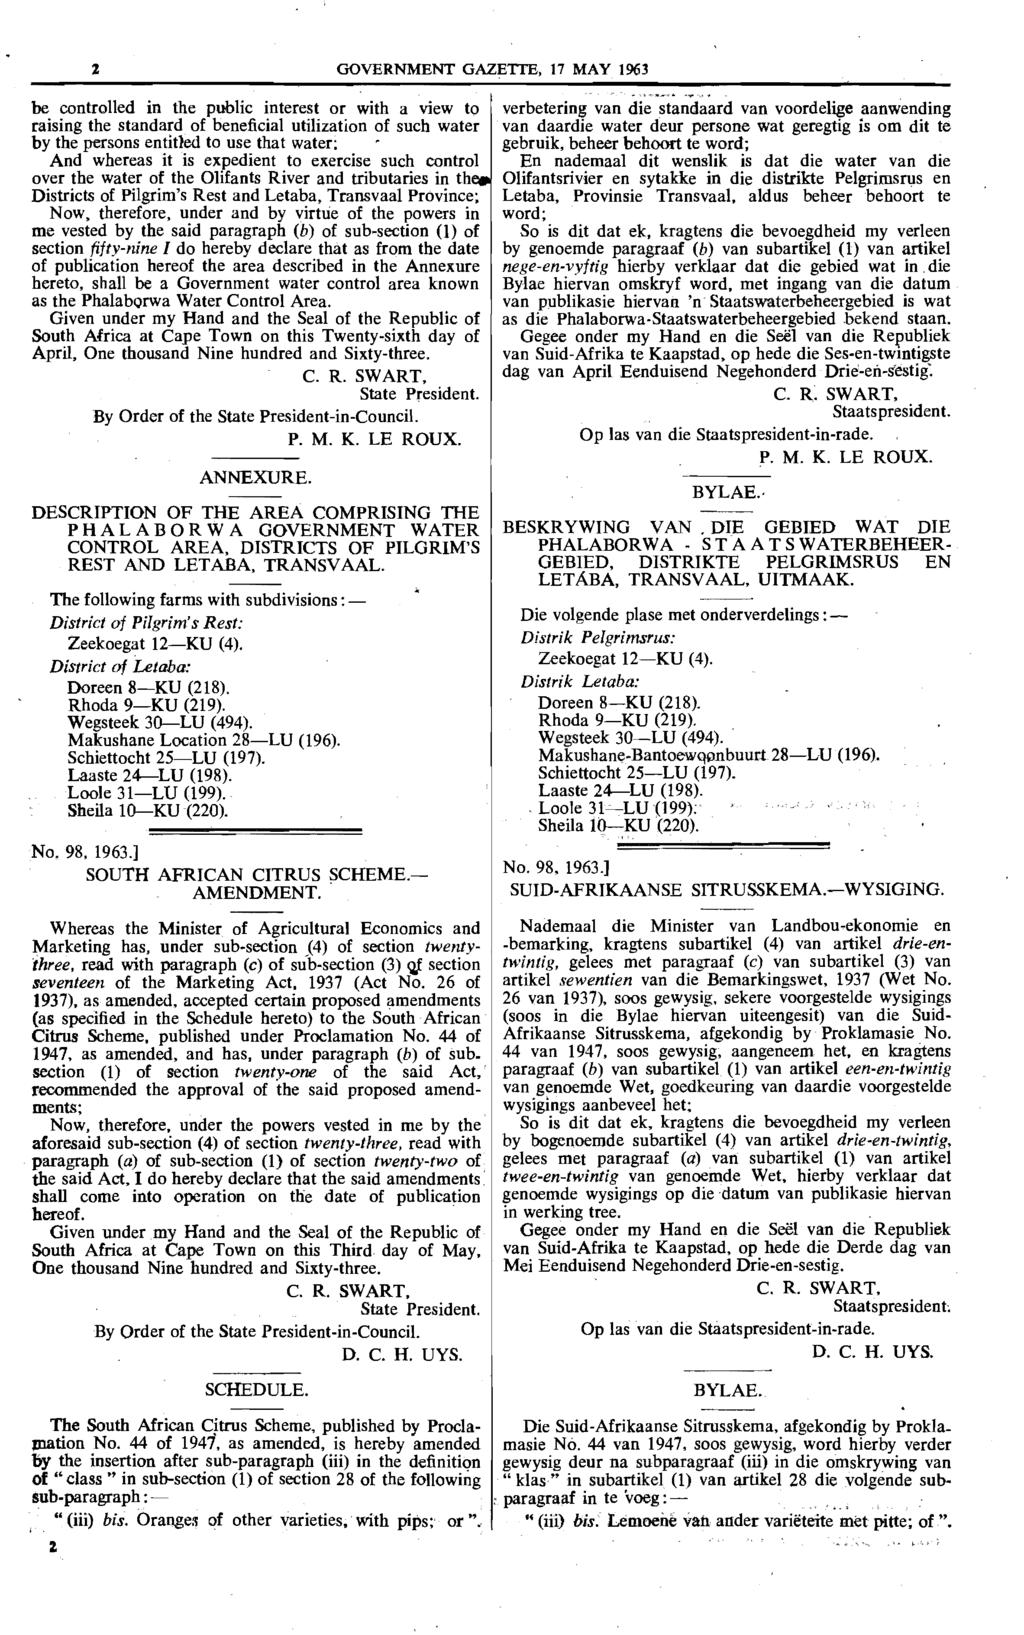 2 GOVERNMENT GAZETTE, 17 MAY 1963 be controlled in the public interest or with a view to raising the standard of beneficial utilization of such water by the persons entitled to use that water: And